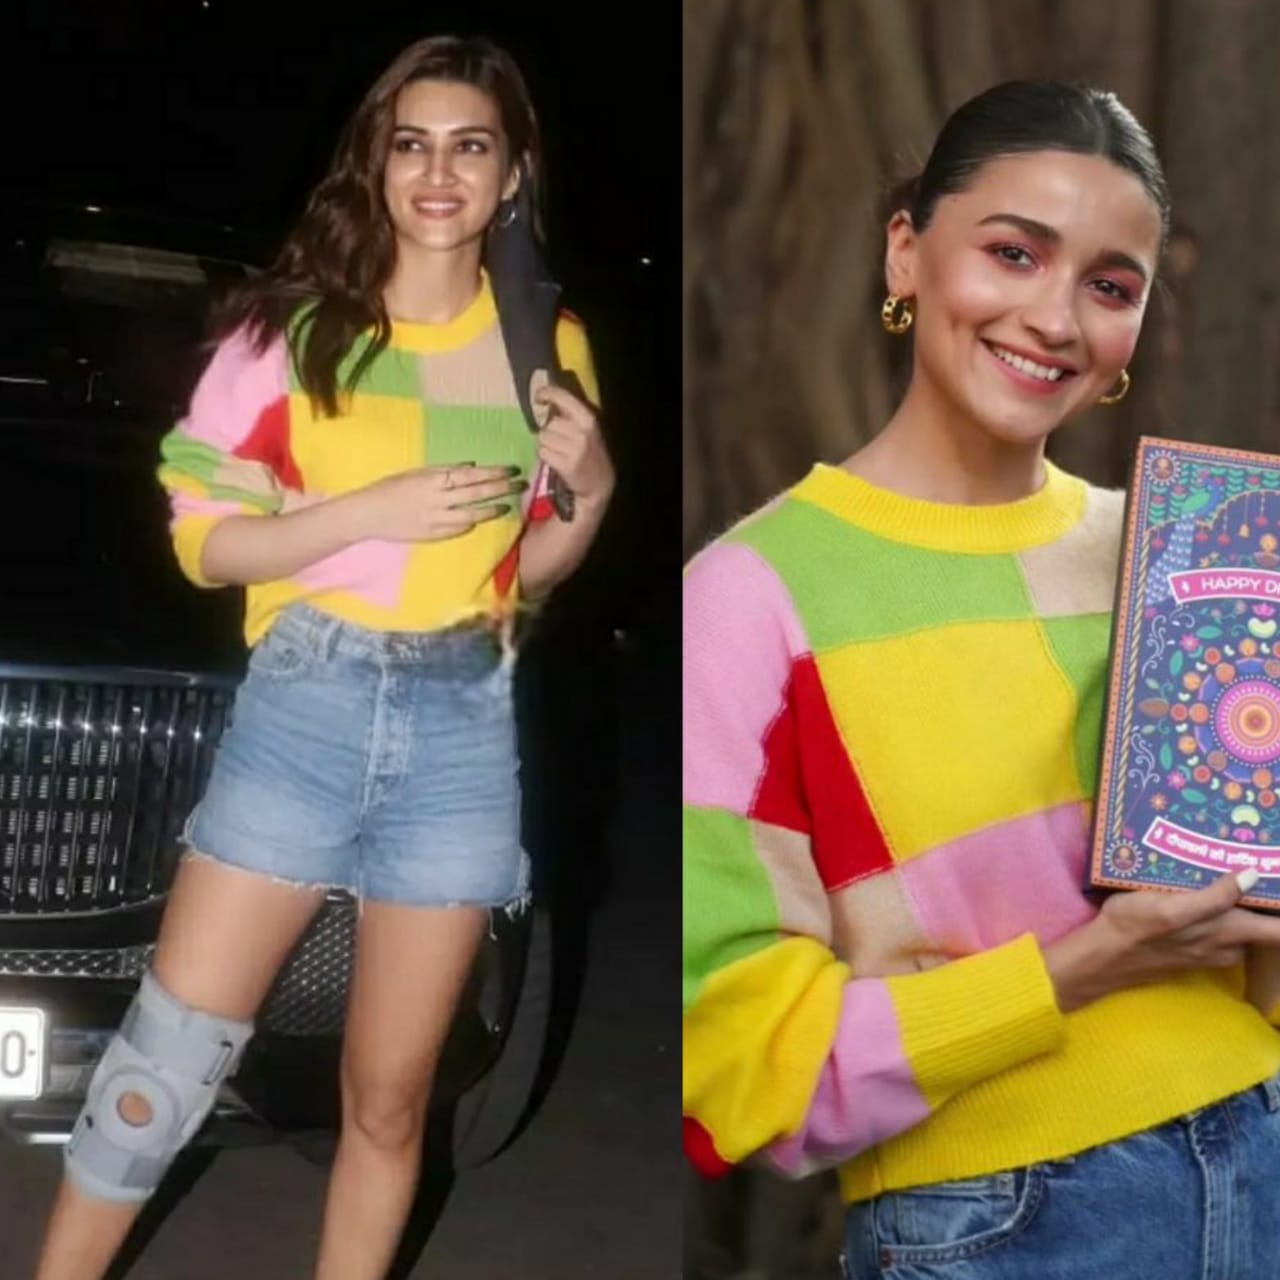 Who wore it better?  Kriti Sanon or Alia Bhatt, owner of the multicolored T-shirt and blue denim shorts